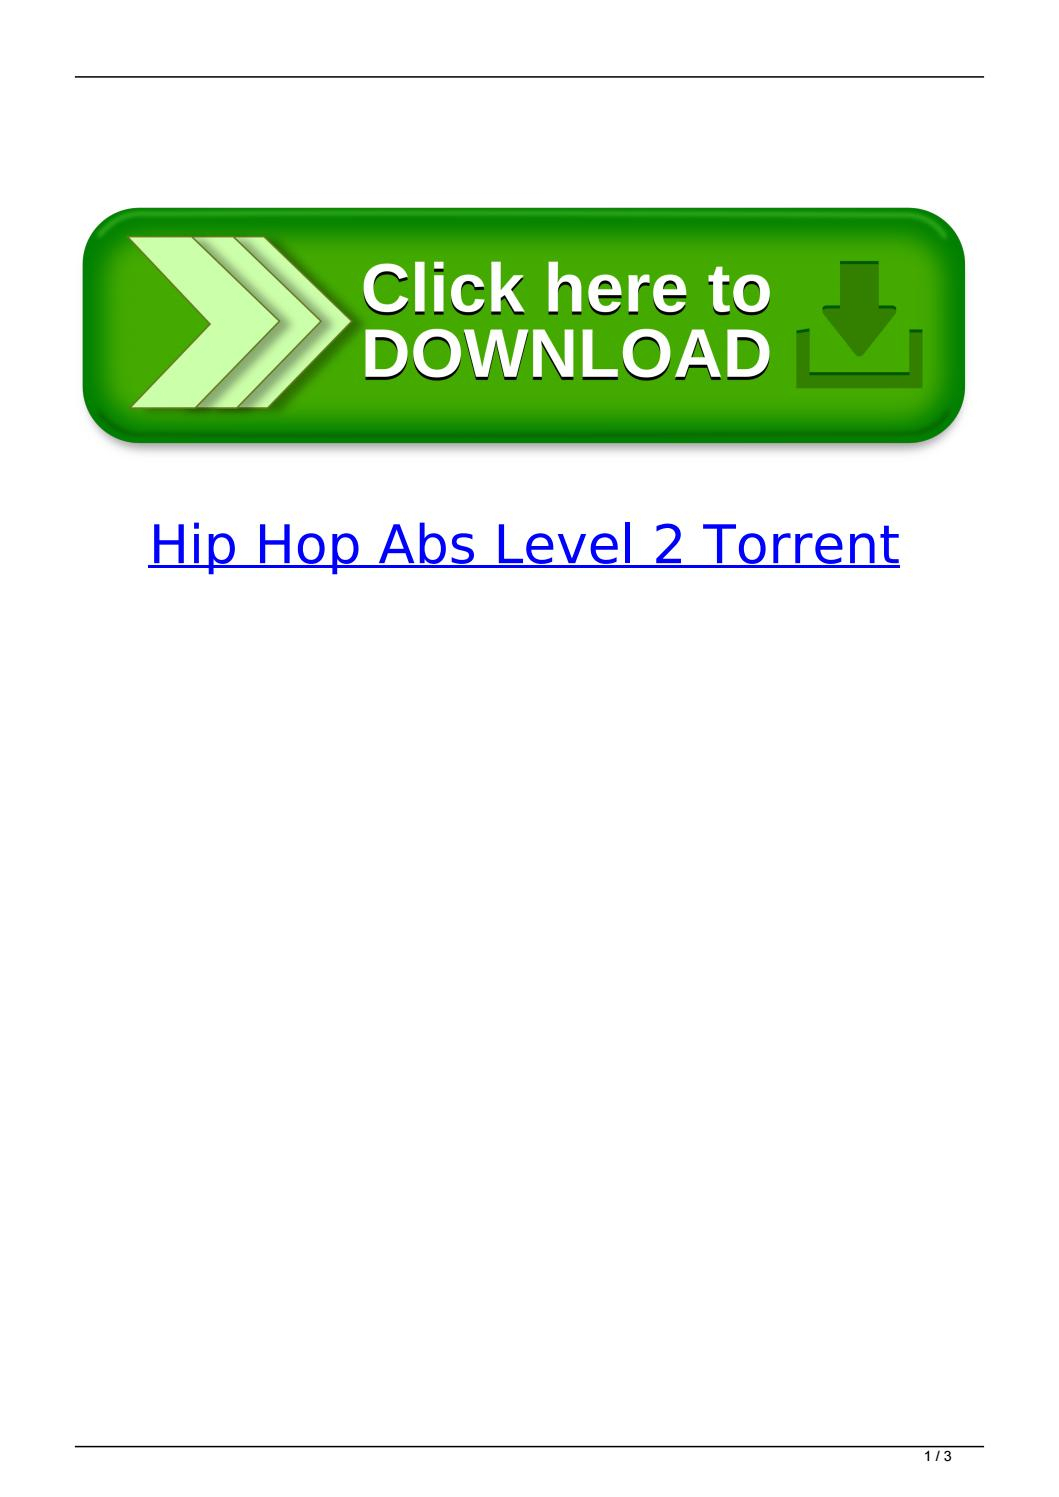 Hip Hop Abs Level 2 Torrent By Hamsdignichi  Issuu with regard to Hip Hop Abs Month 2